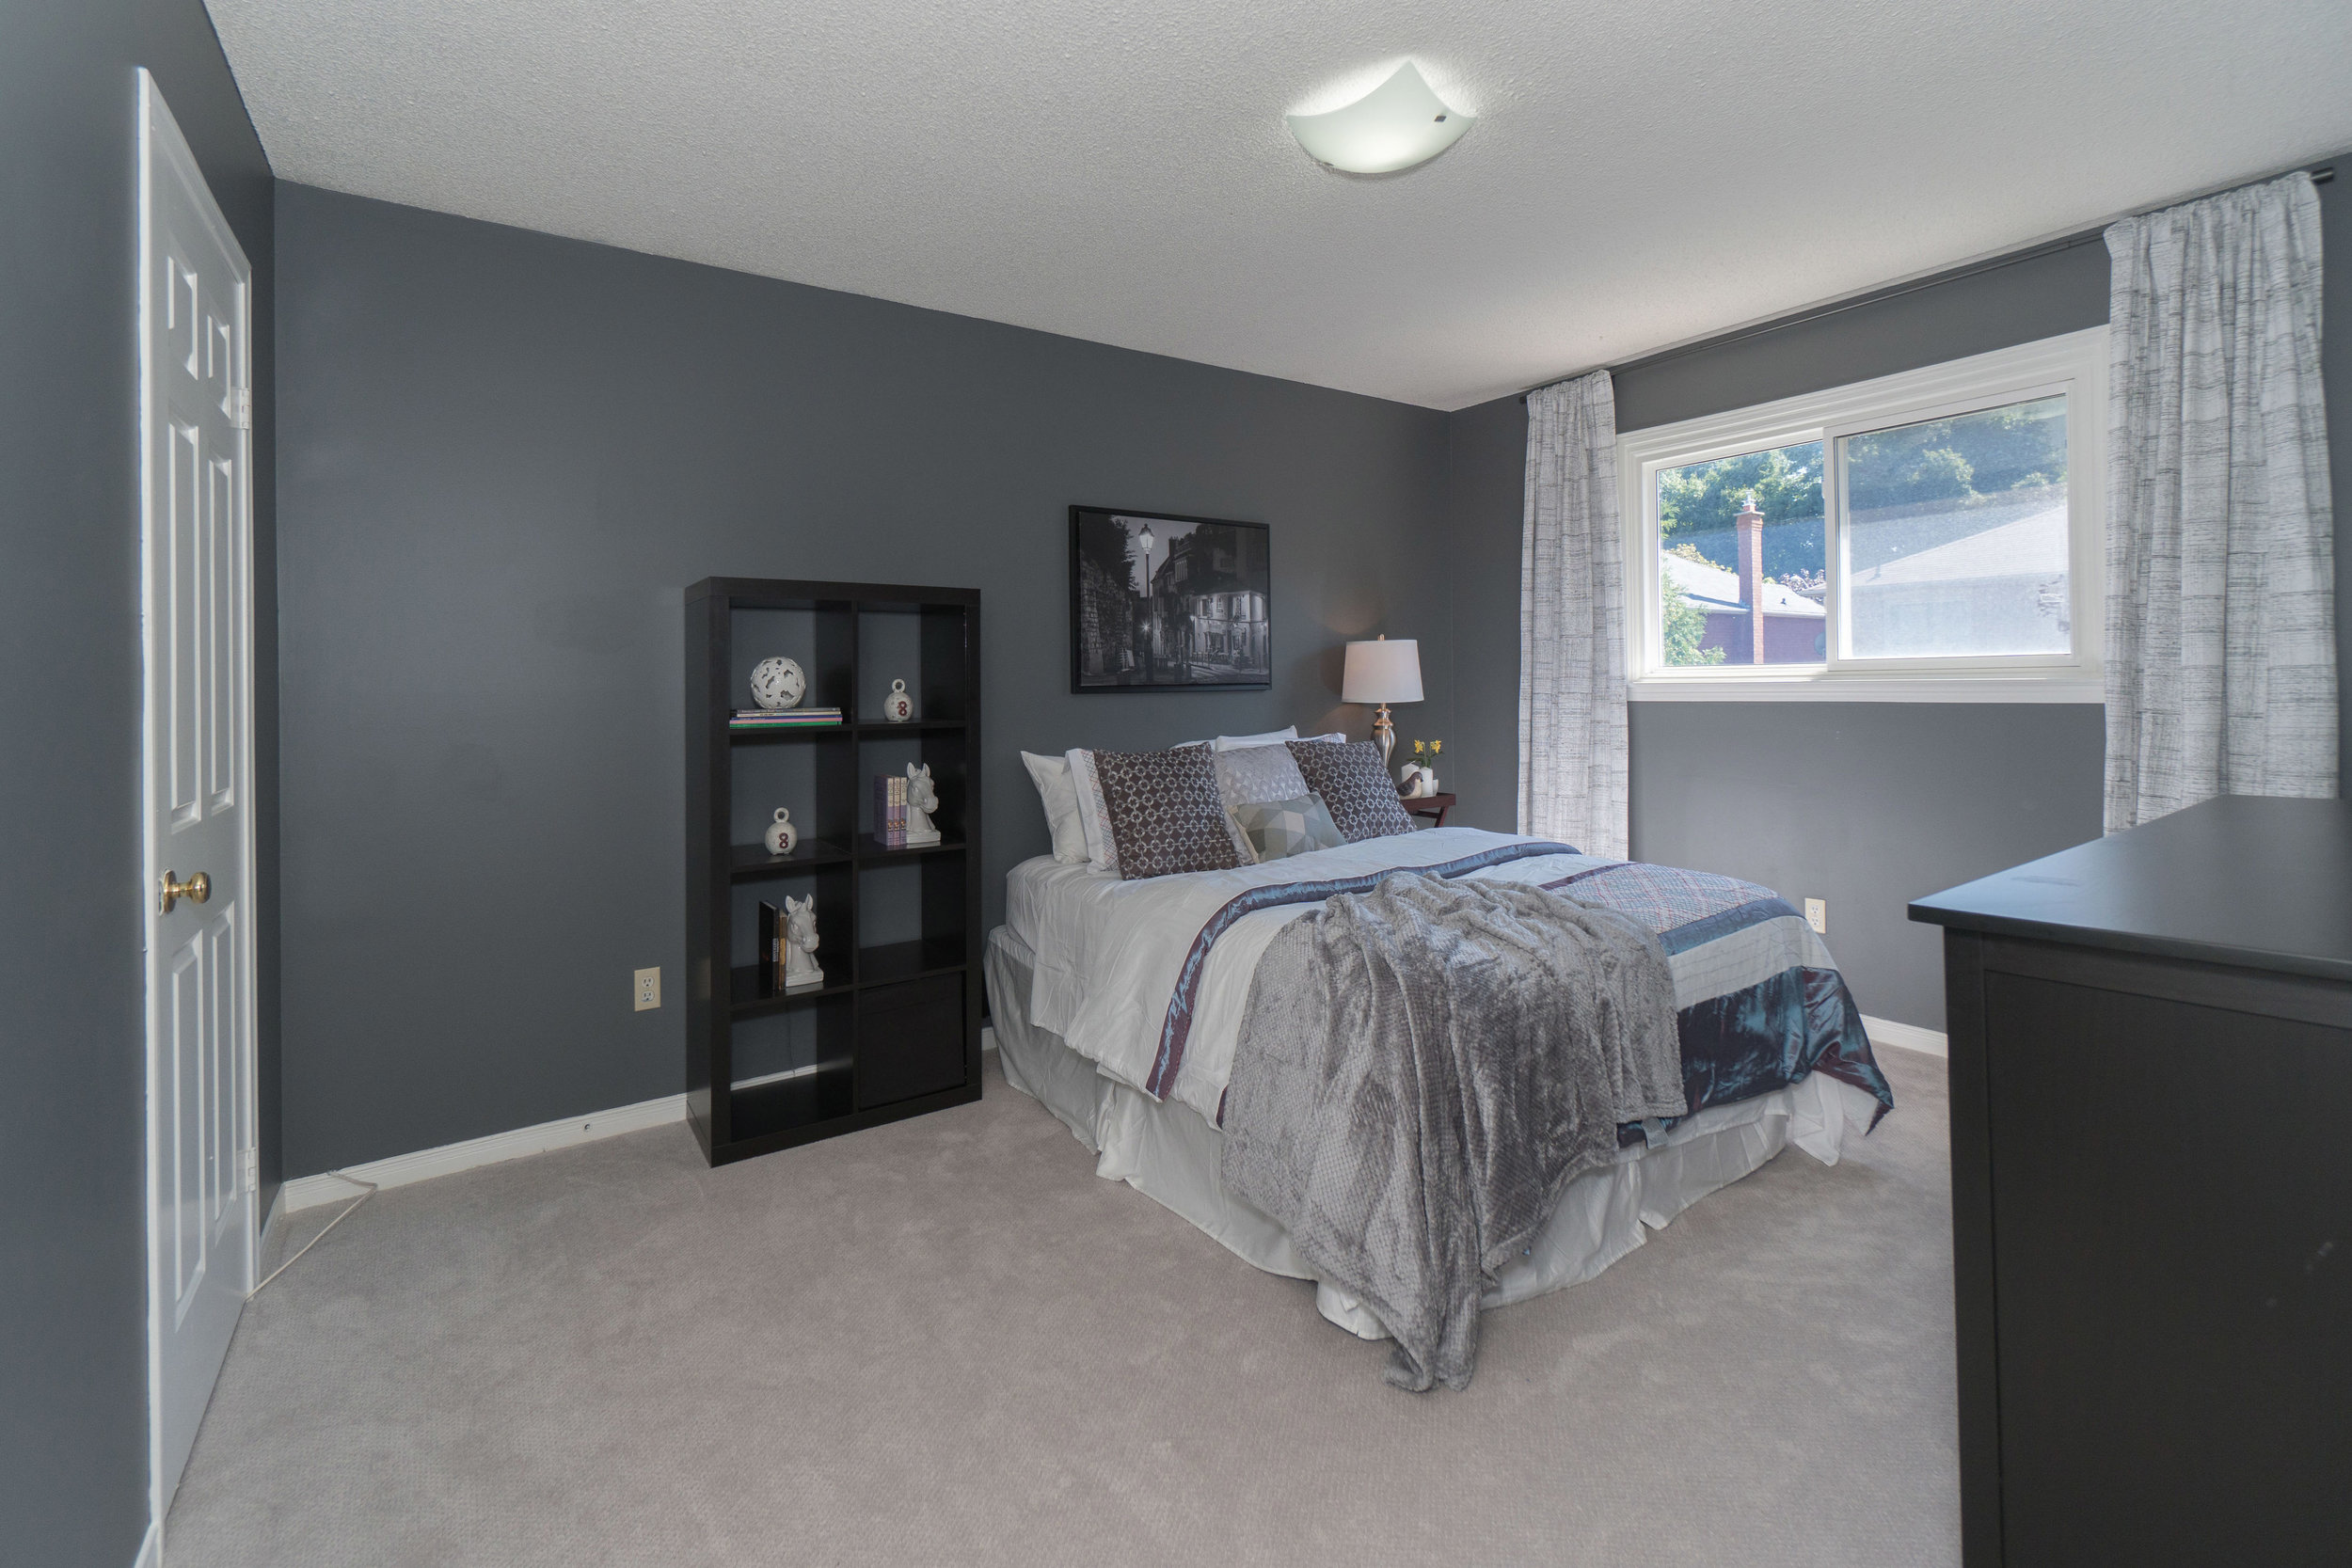 Organize and Stage Your Home with Professional Home Stager and Organizer Nina Dorian | The Home Staging Show Podcast Season 6 Episode 1 | Before & After 4.jpg